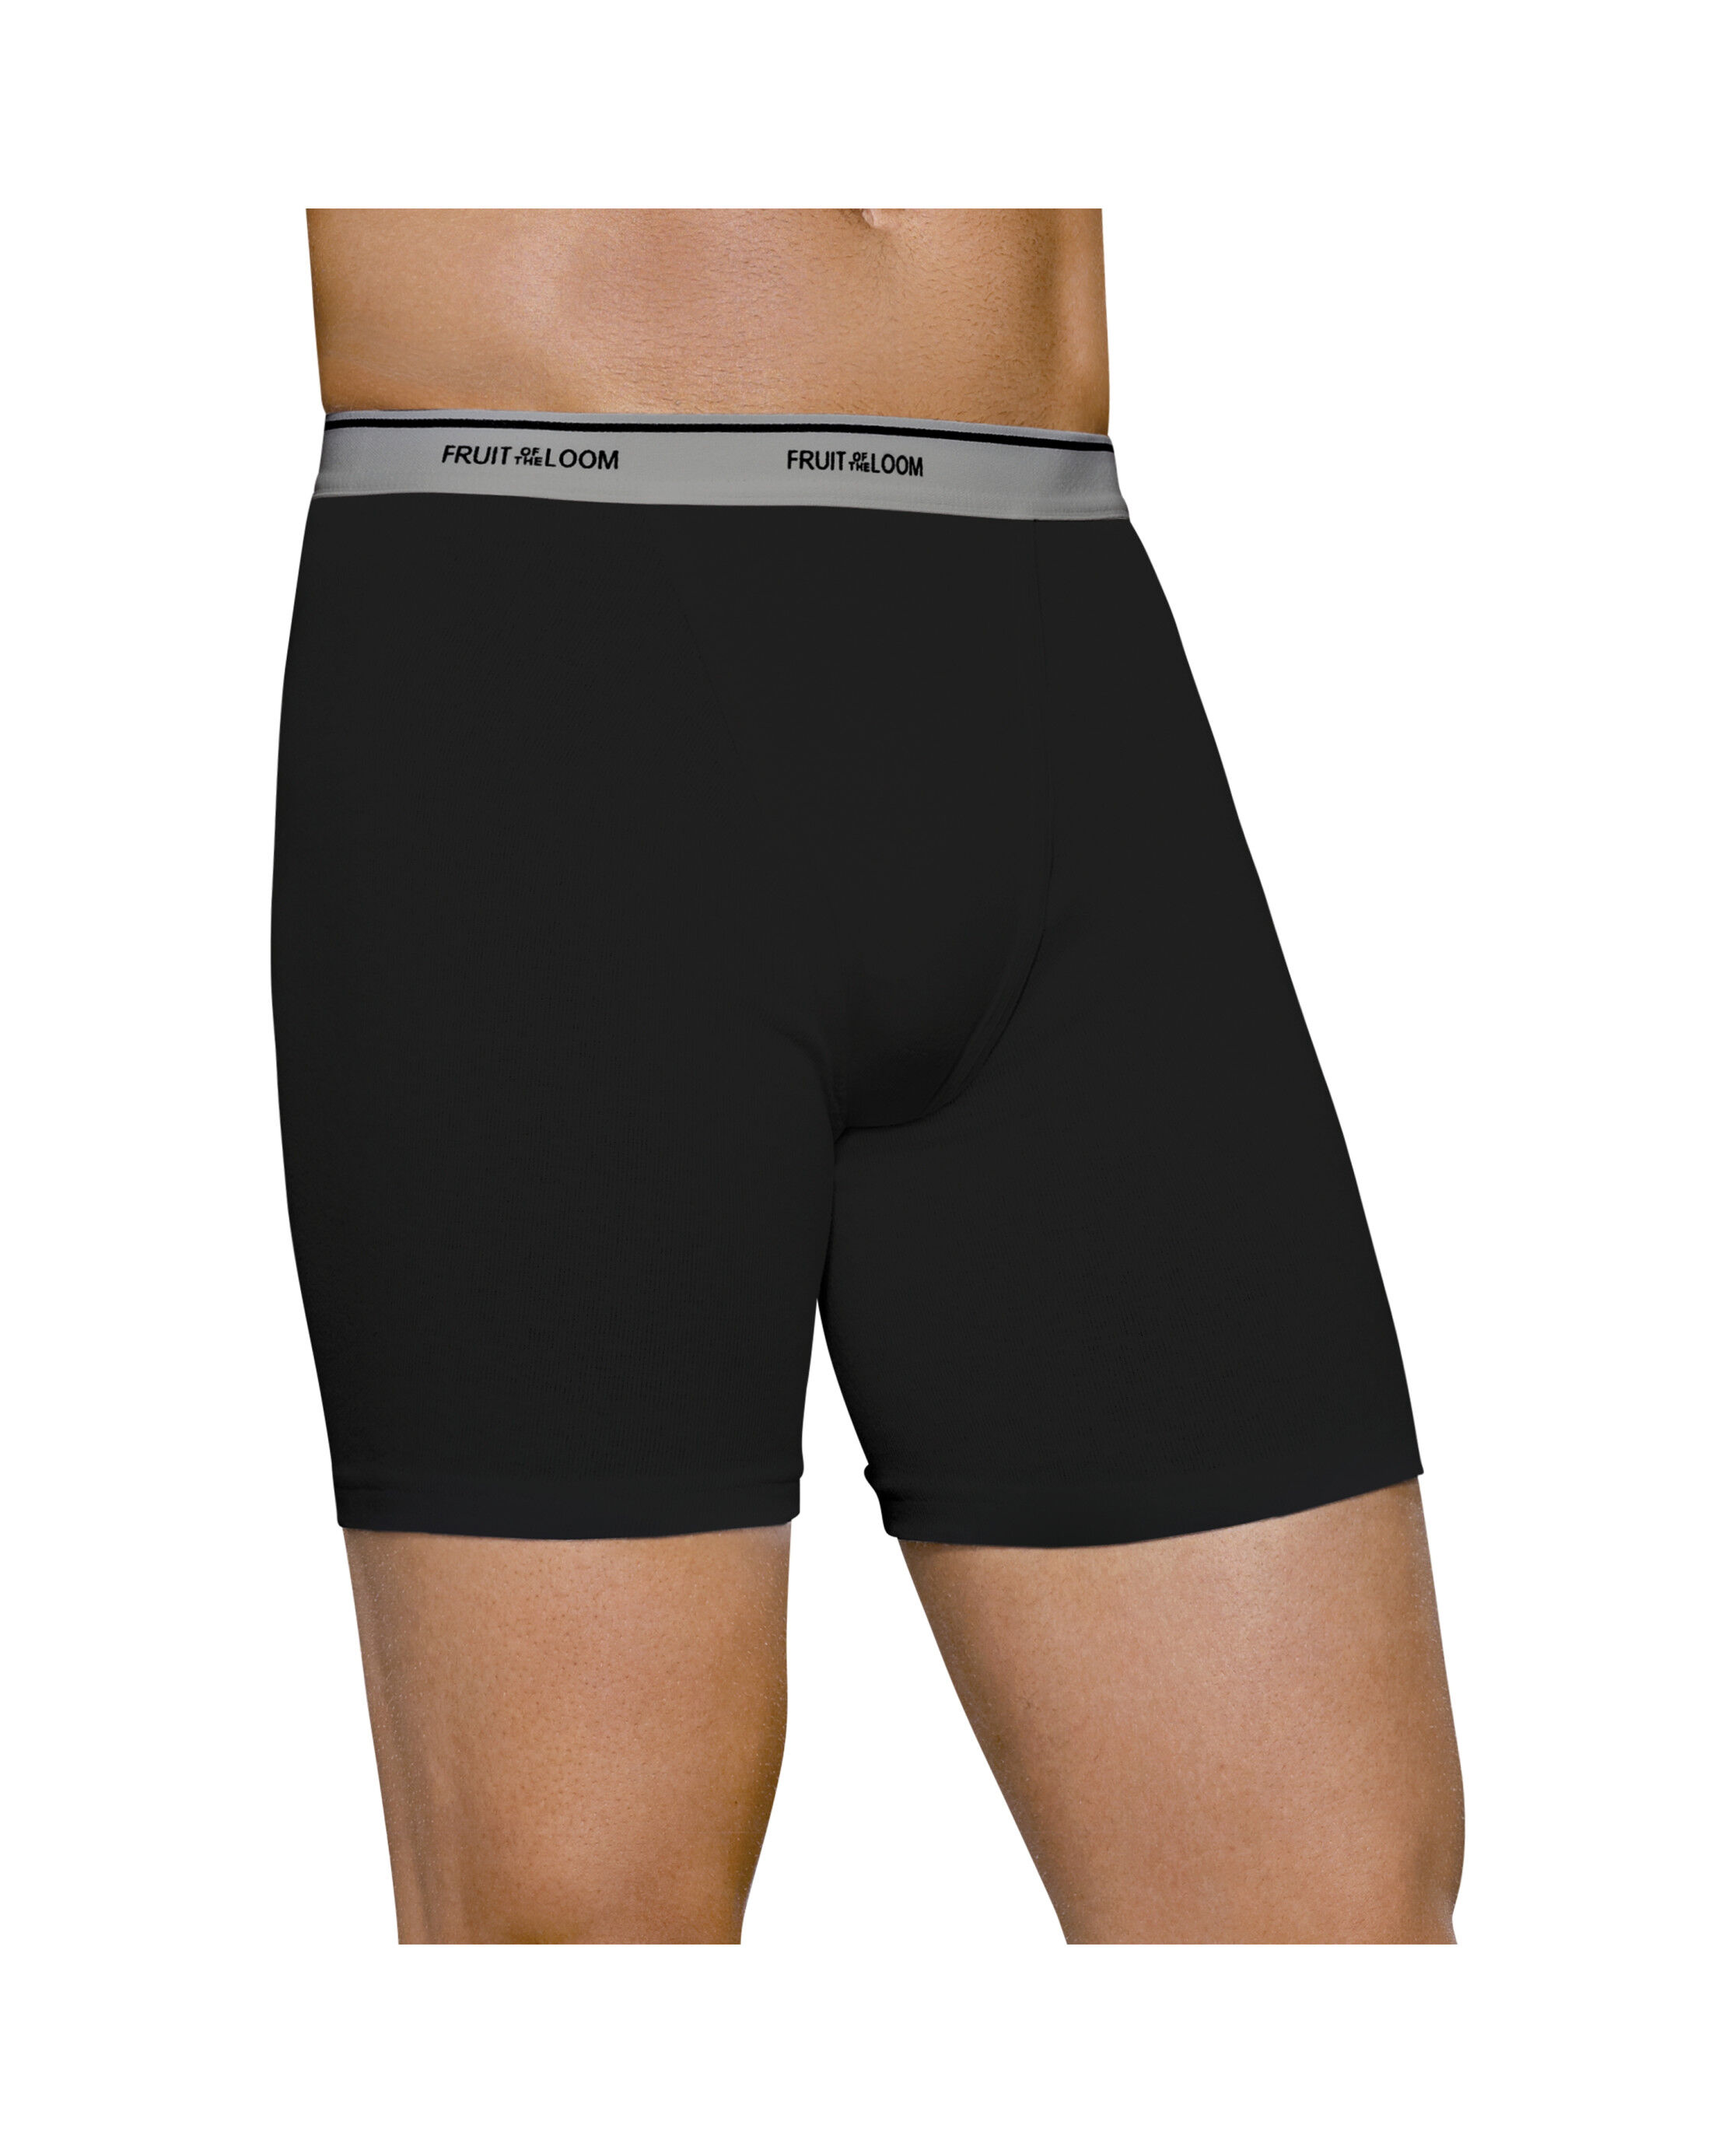 Men' 4 Pack Fashion Print Solid Boxer Briefs Extended